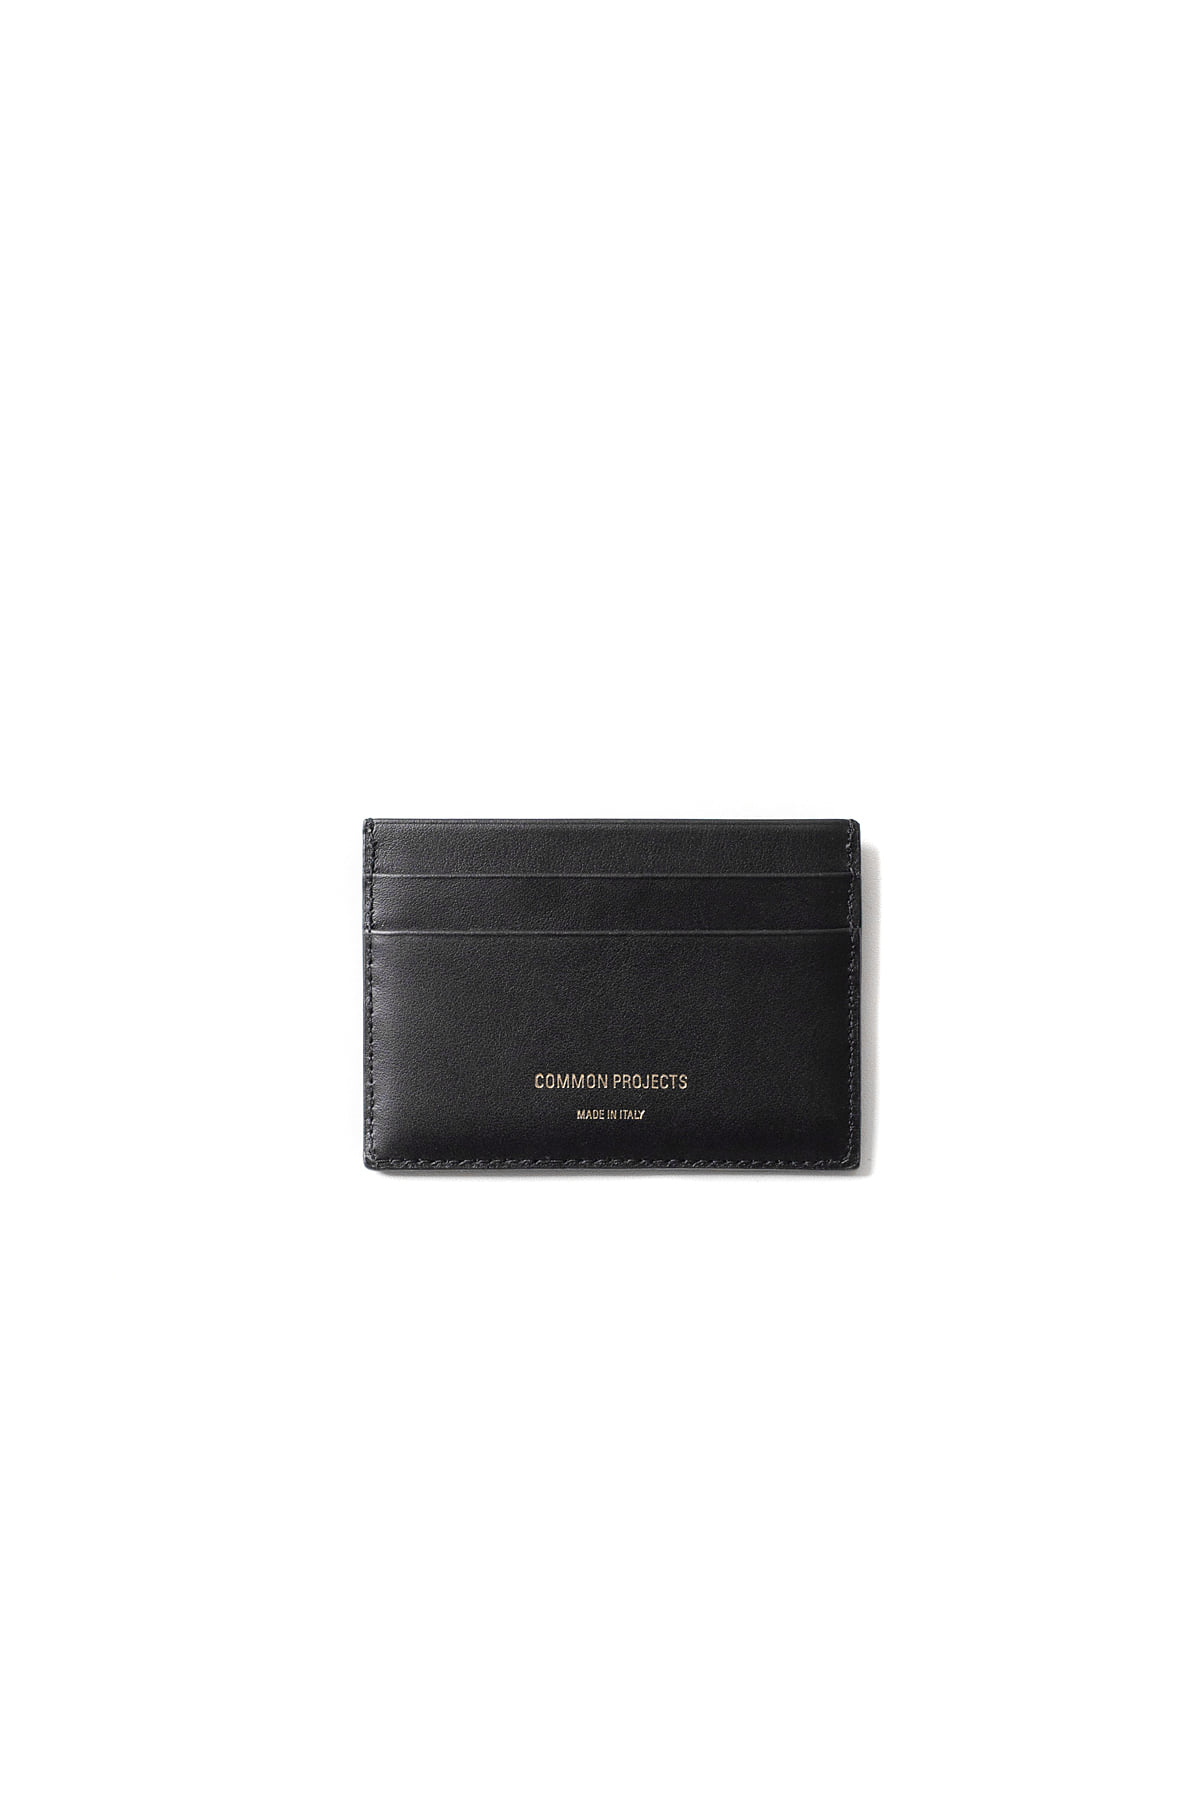 Common Projects : Multi Card Holder (Black)